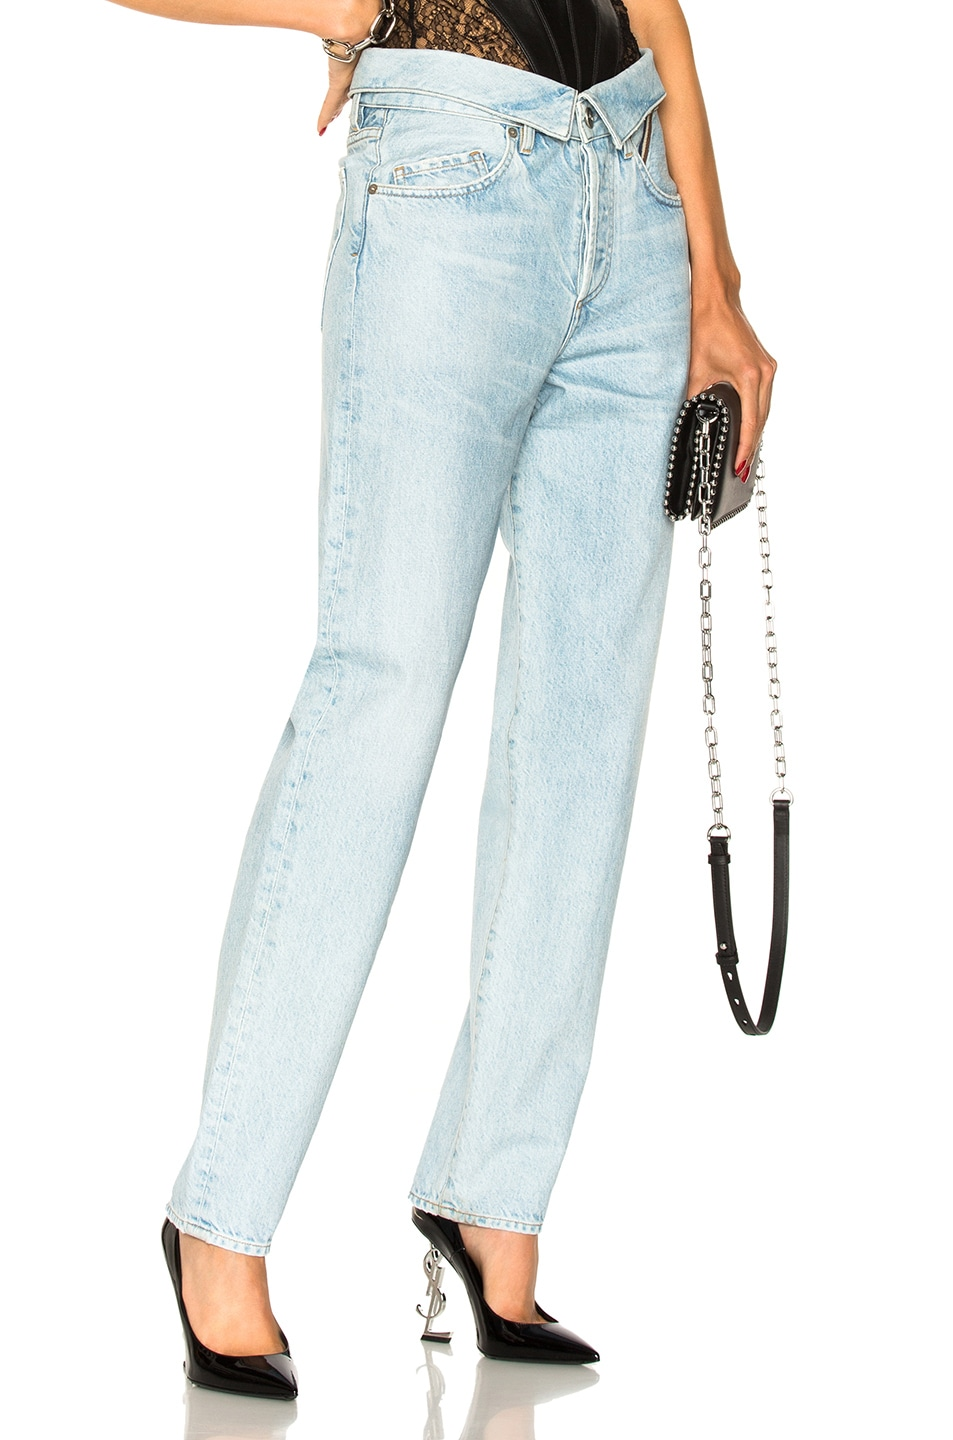 Flip Straight by Jean Atelier, available on fwrd.com Olivia Culpo Pants Exact Product